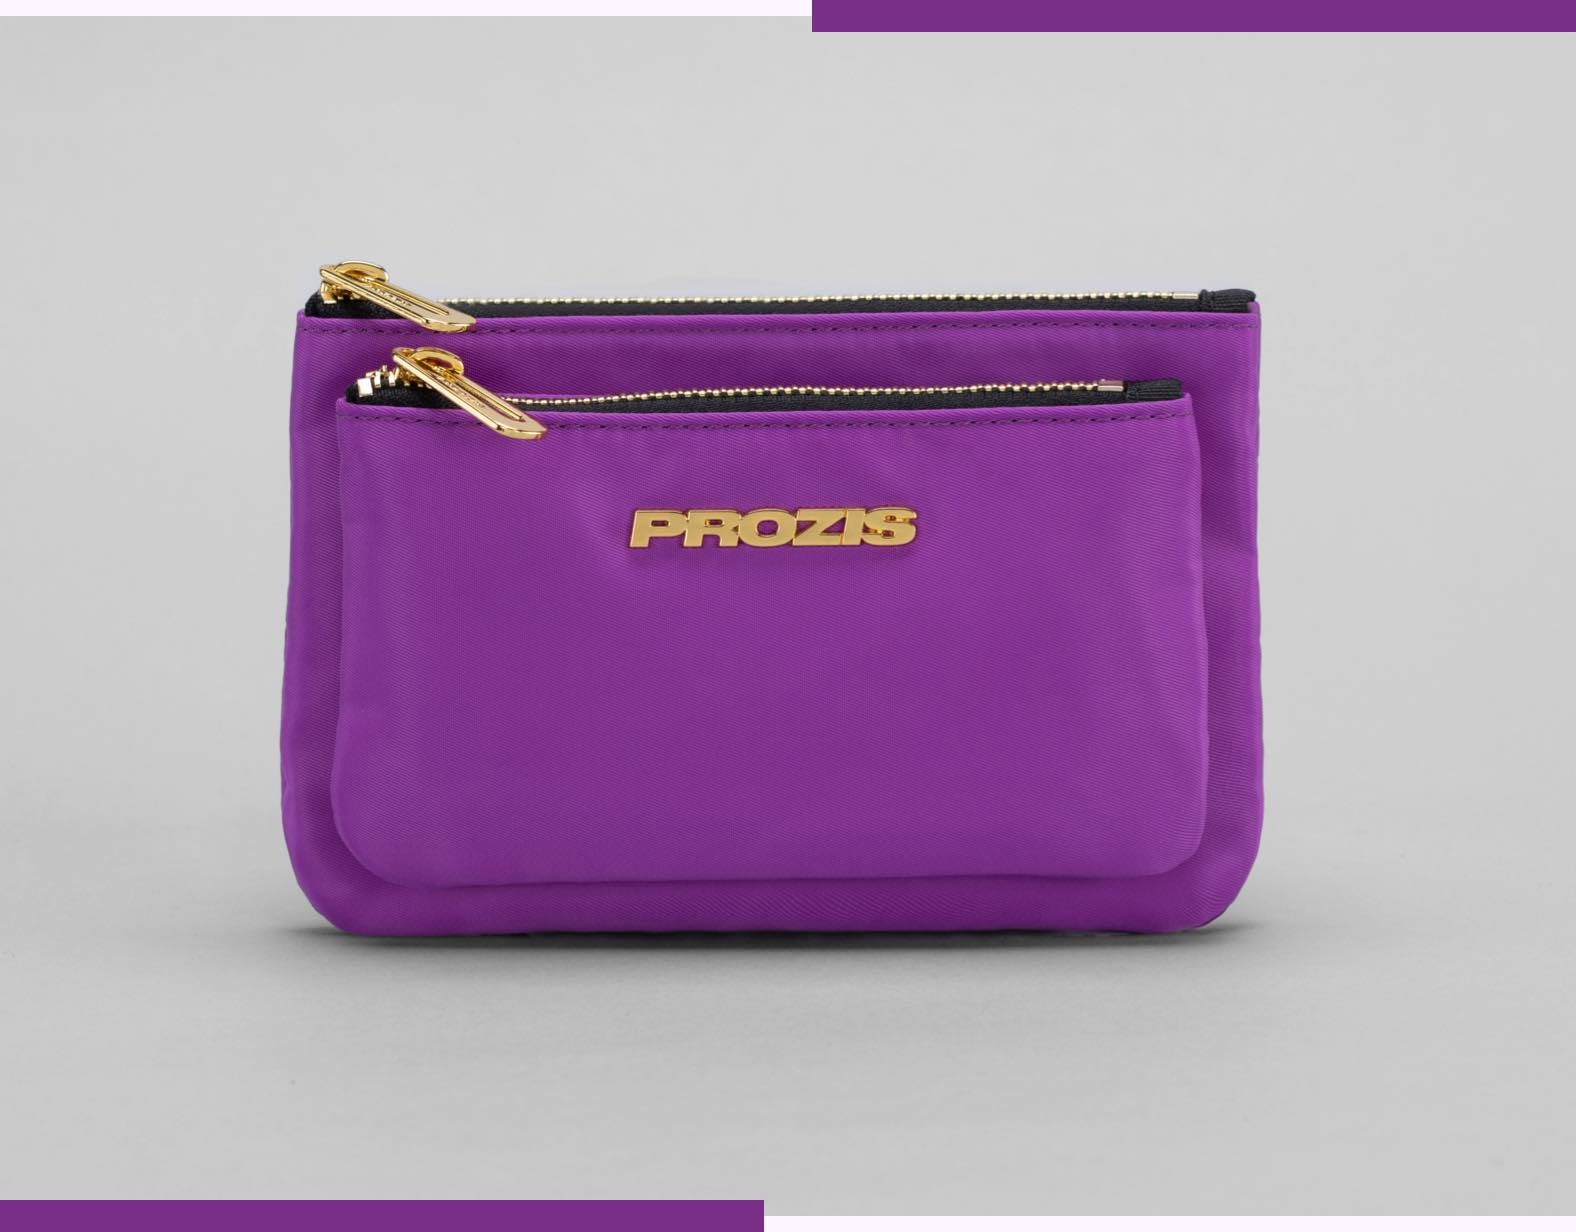 Prozis Double Wallet